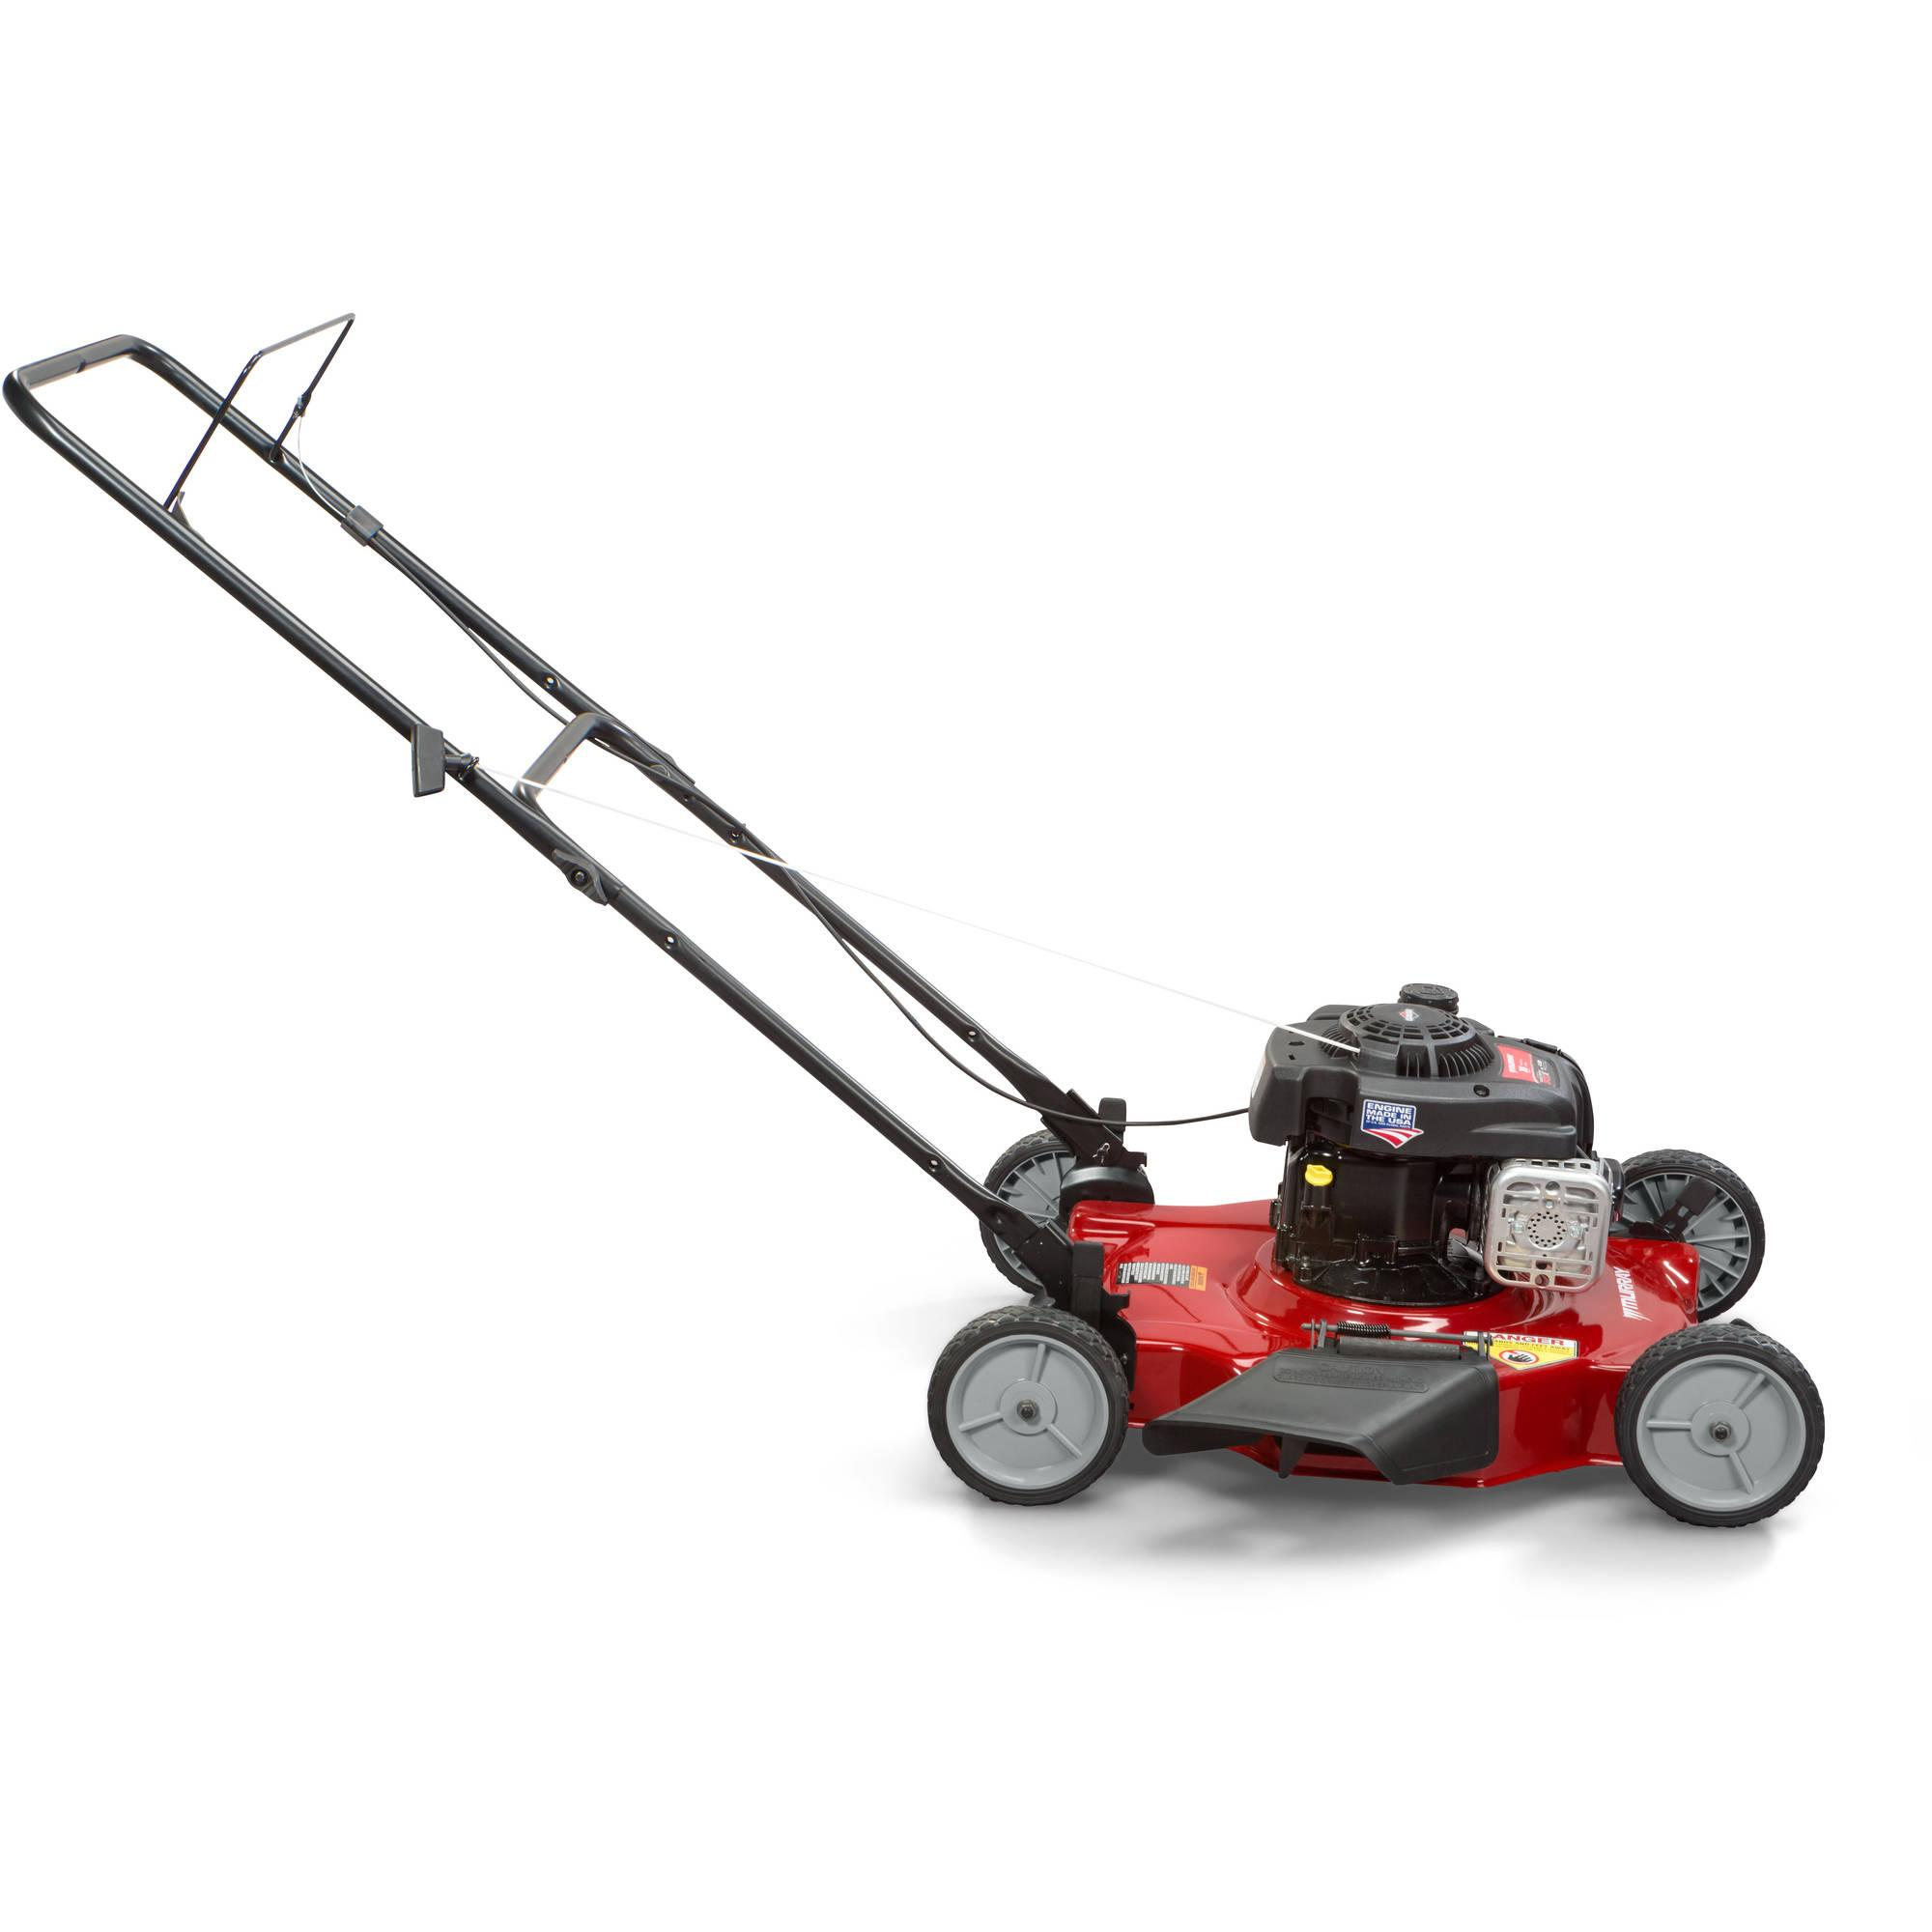 Murray 20 Quot Gas Powered Lawn Mower Ebay